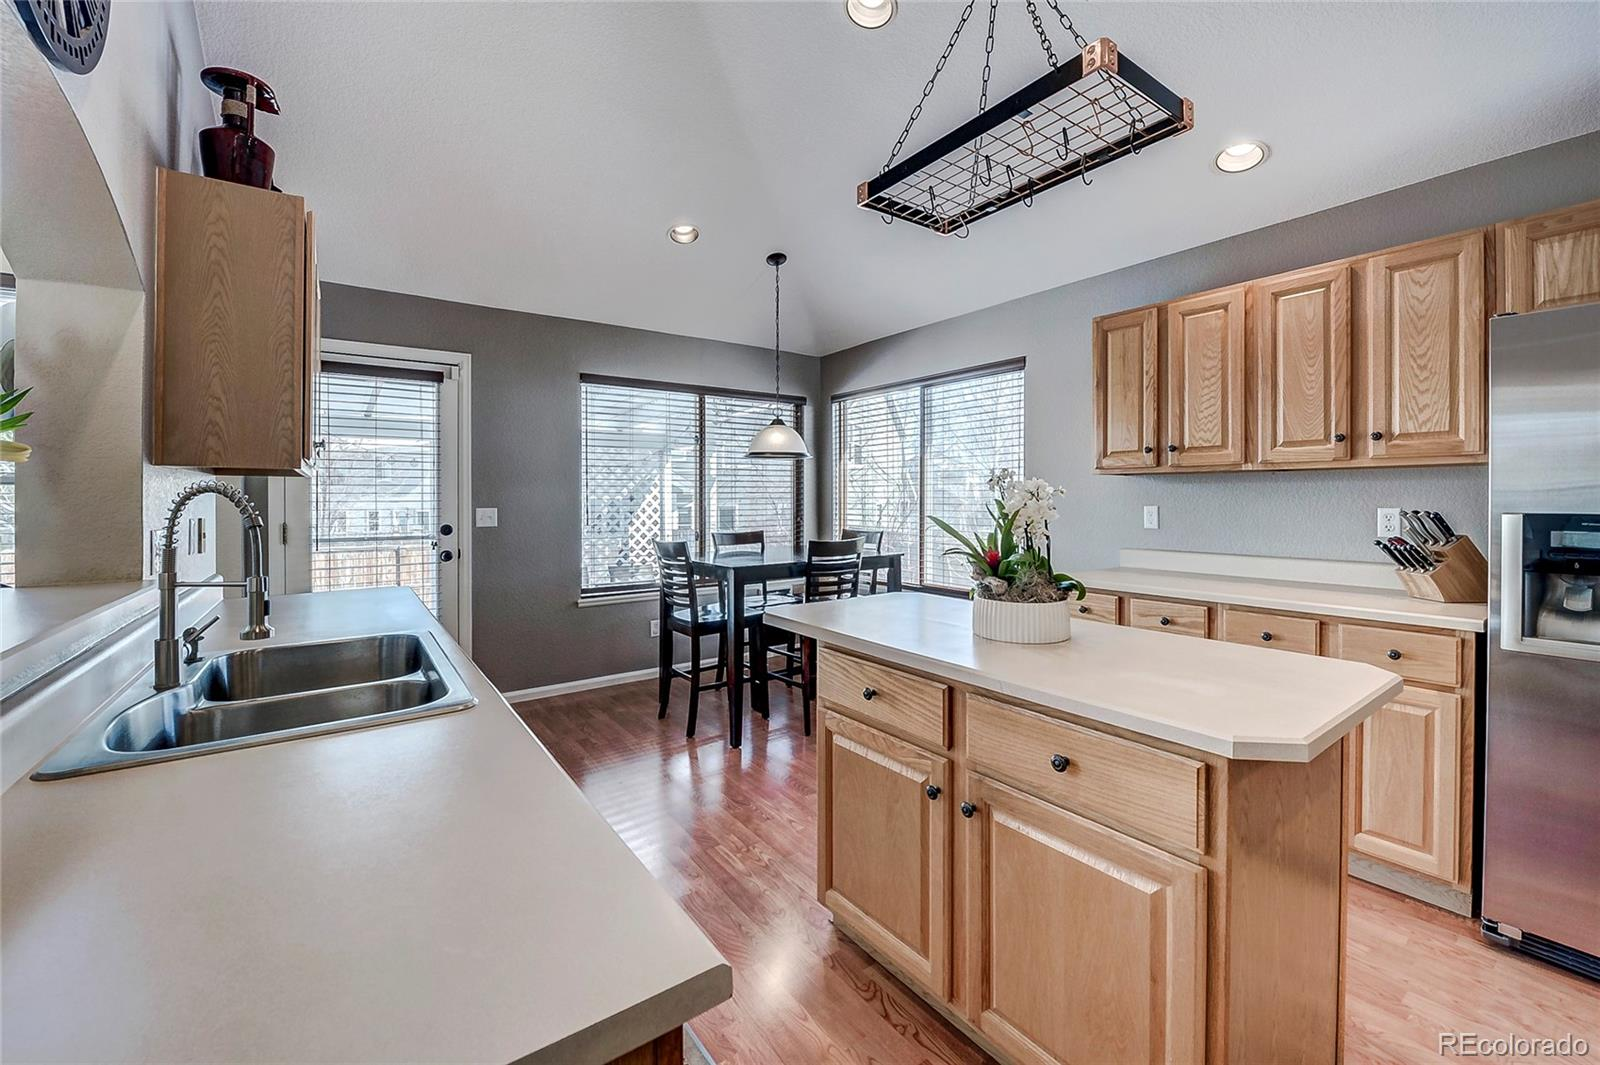 MLS# 4951528 - 34 - 15781 W 66th Place, Arvada, CO 80007